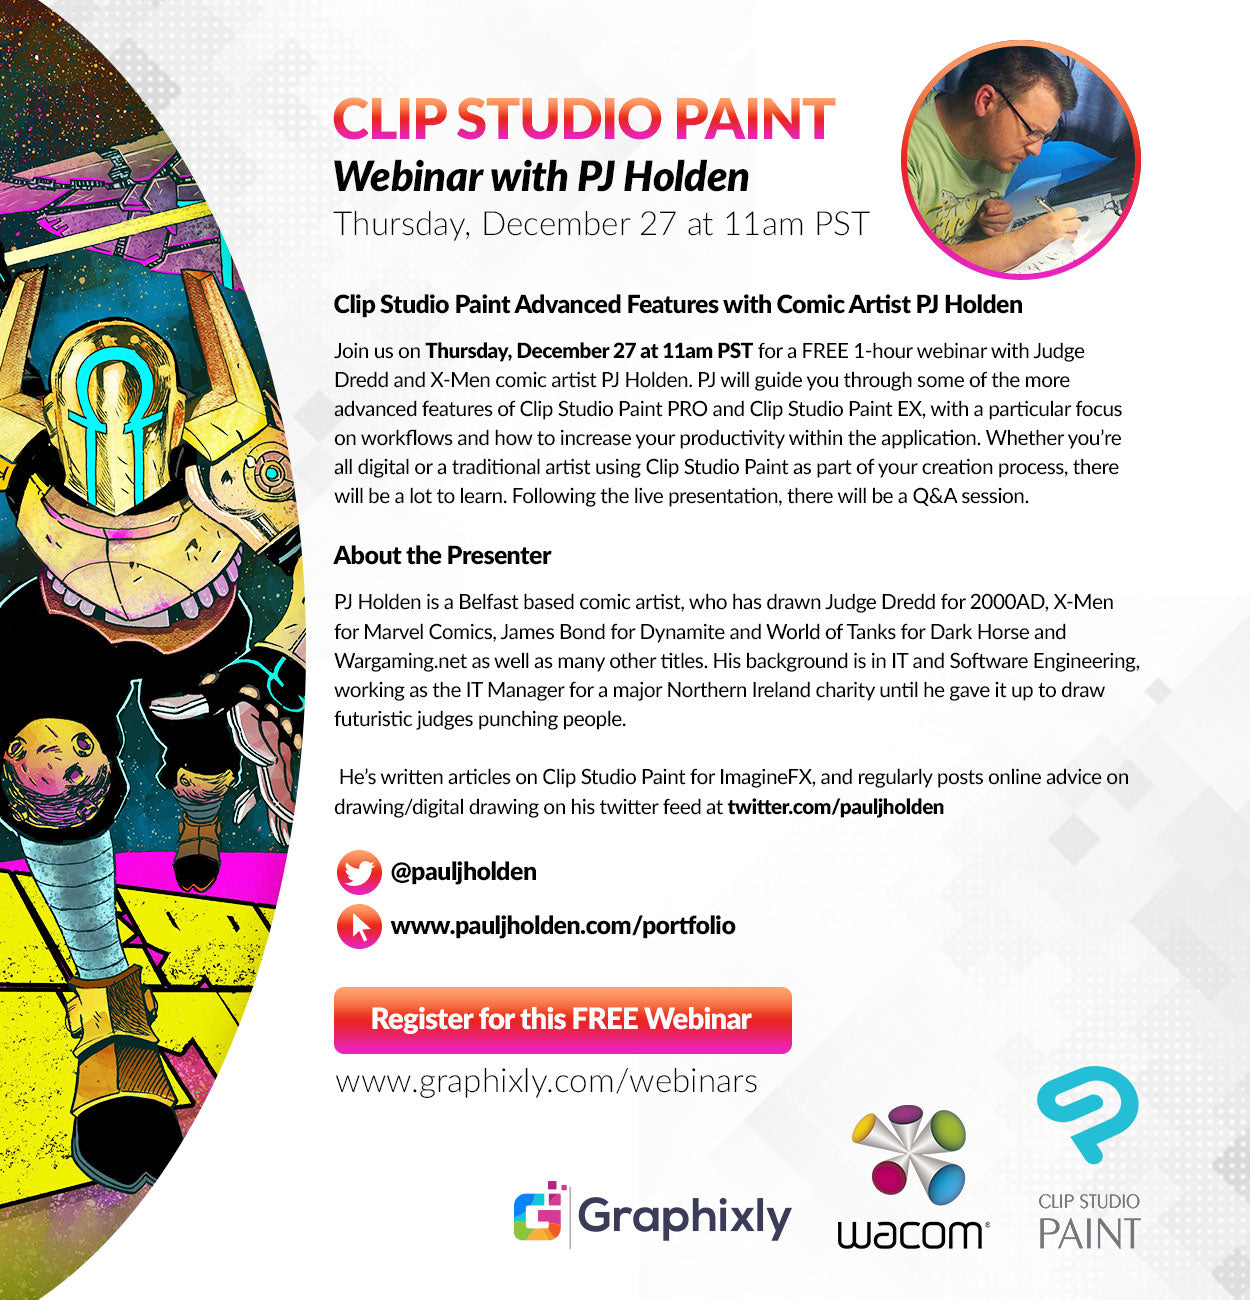 Webinar - Clip Studio Paint Advanced Features with Comic Artist PJ Holden